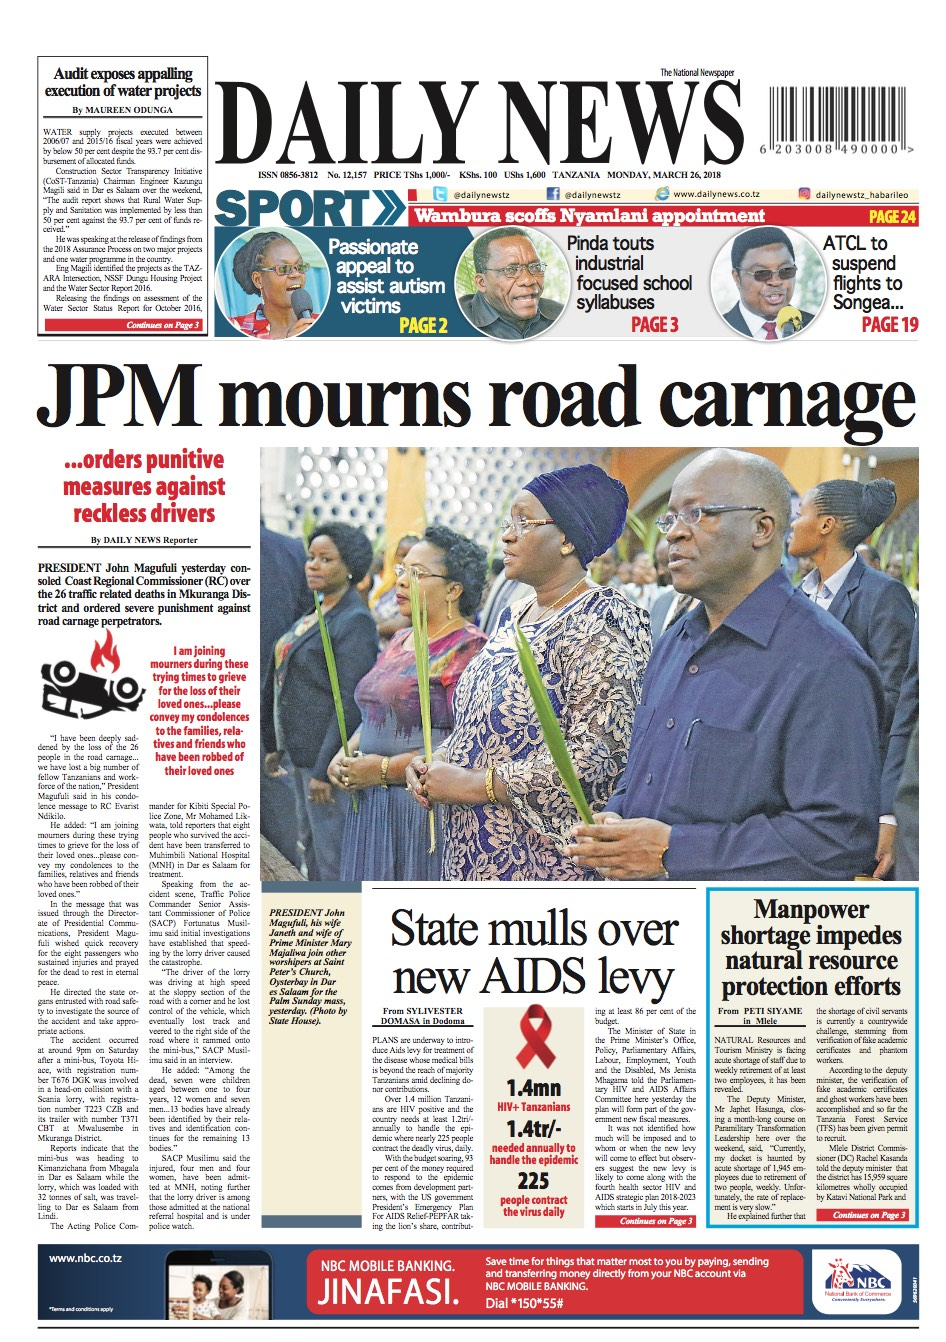 JPM MOURNS ROAD CARNAGE